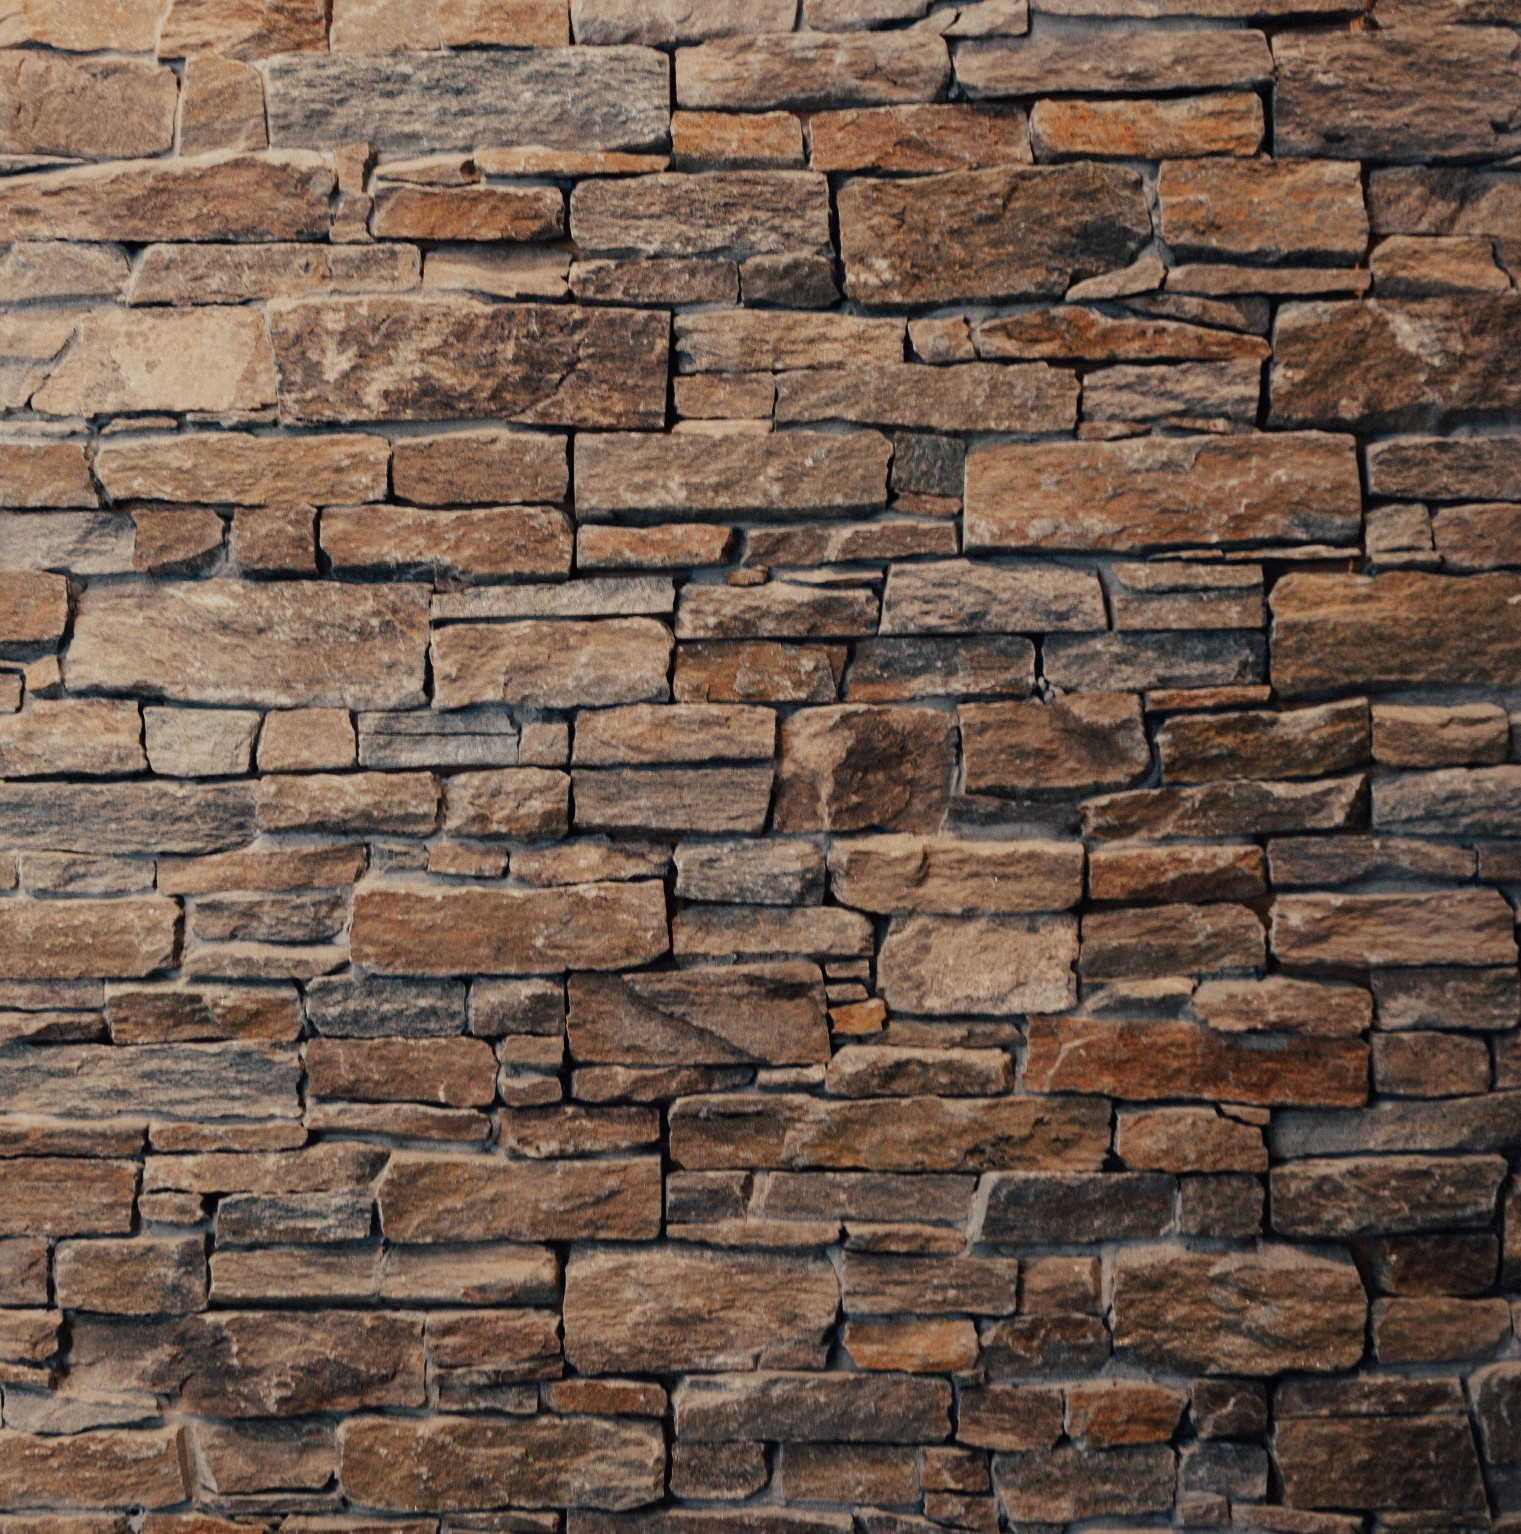 Natural stone veneer j r garden stone and rental inc for Stone veneer house pictures